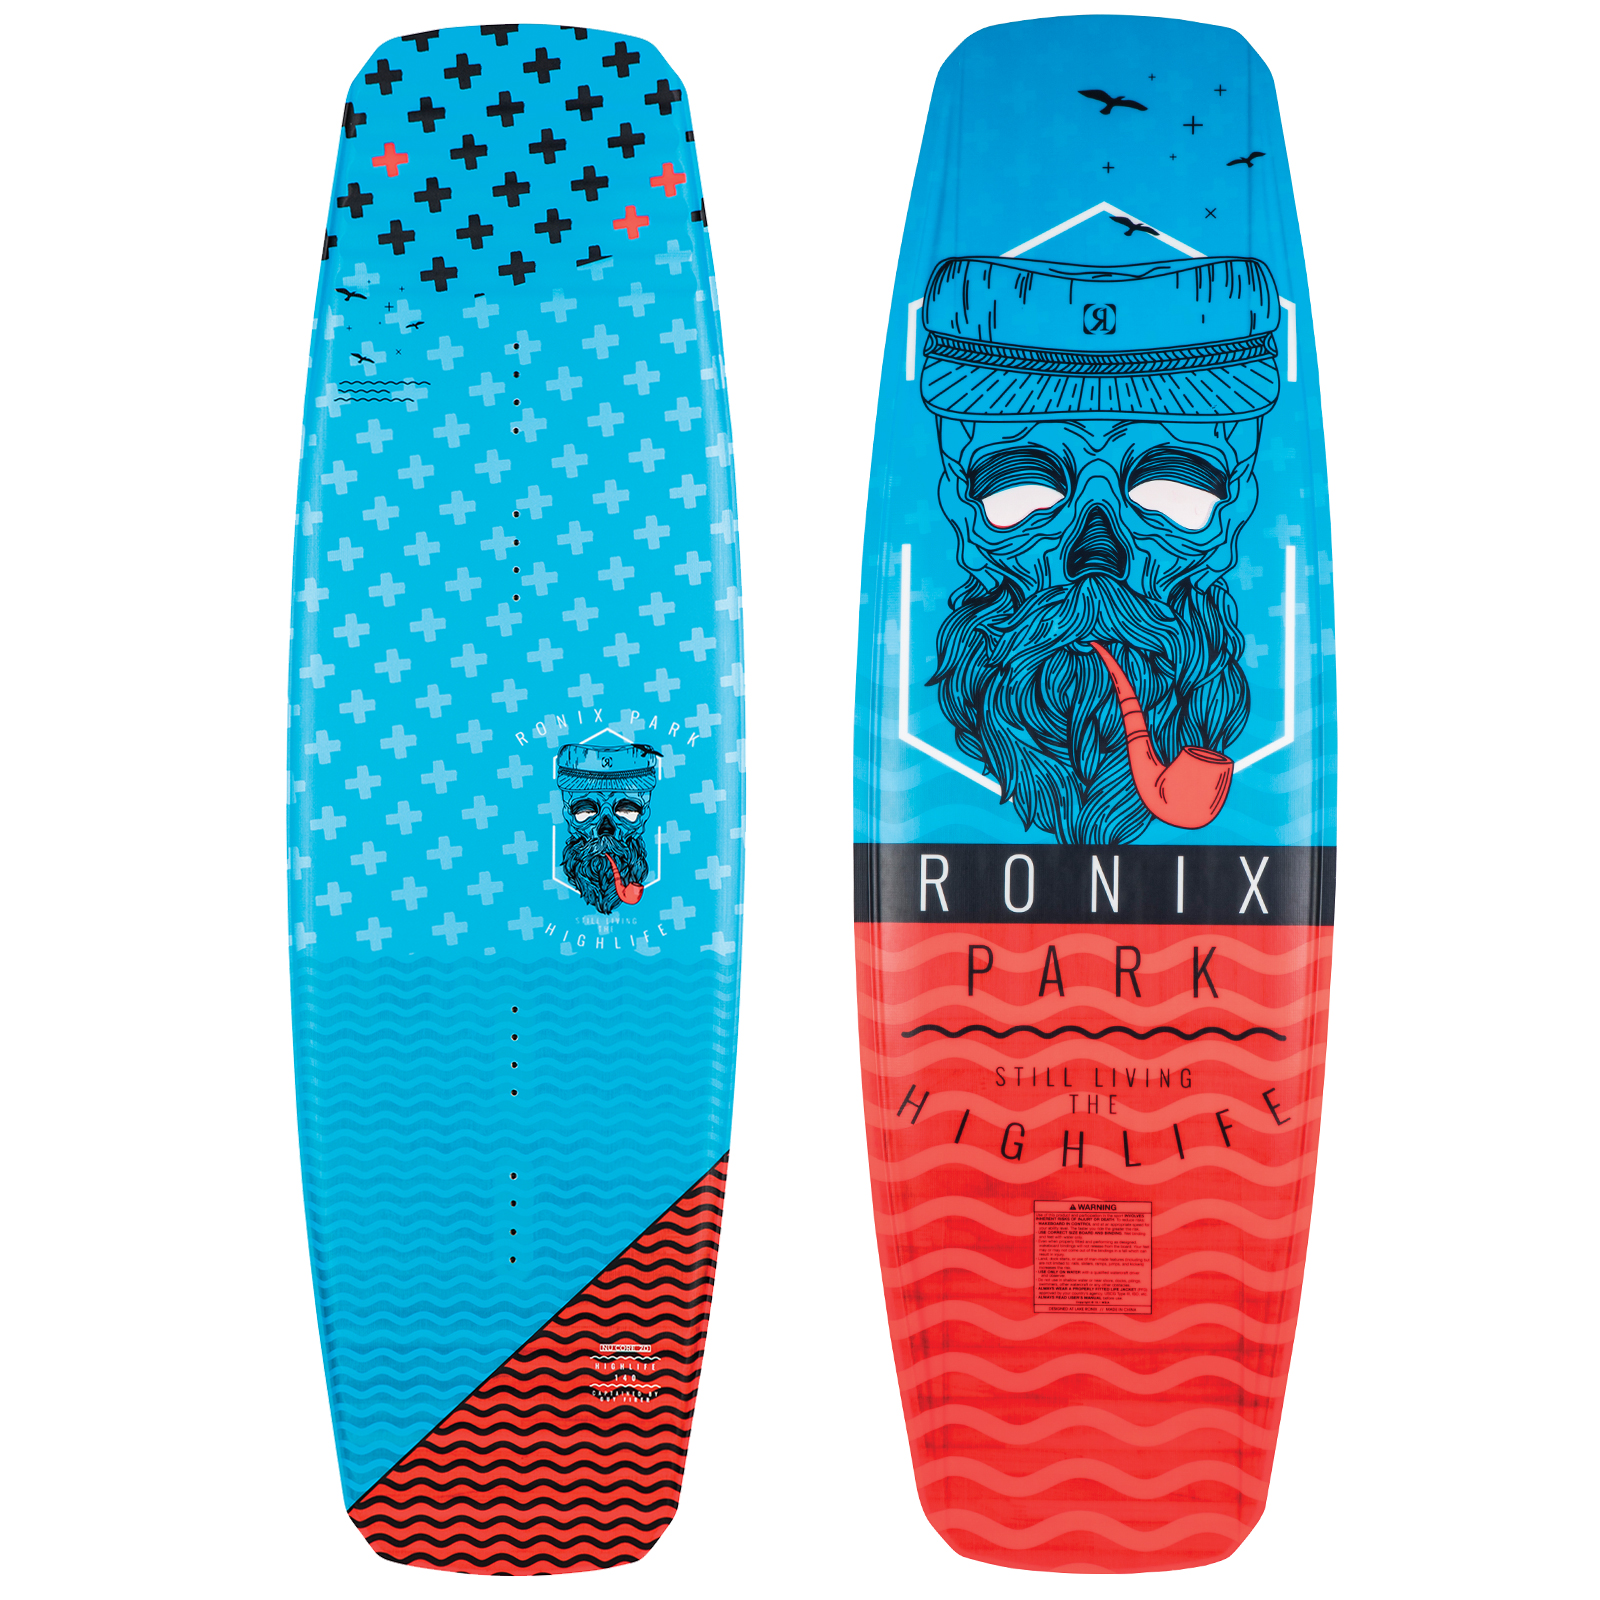 PLACA WAKEBOARD HIGHLIFE FLEXBOX 2 130 JR. WAKEBOARD RONIX 2019